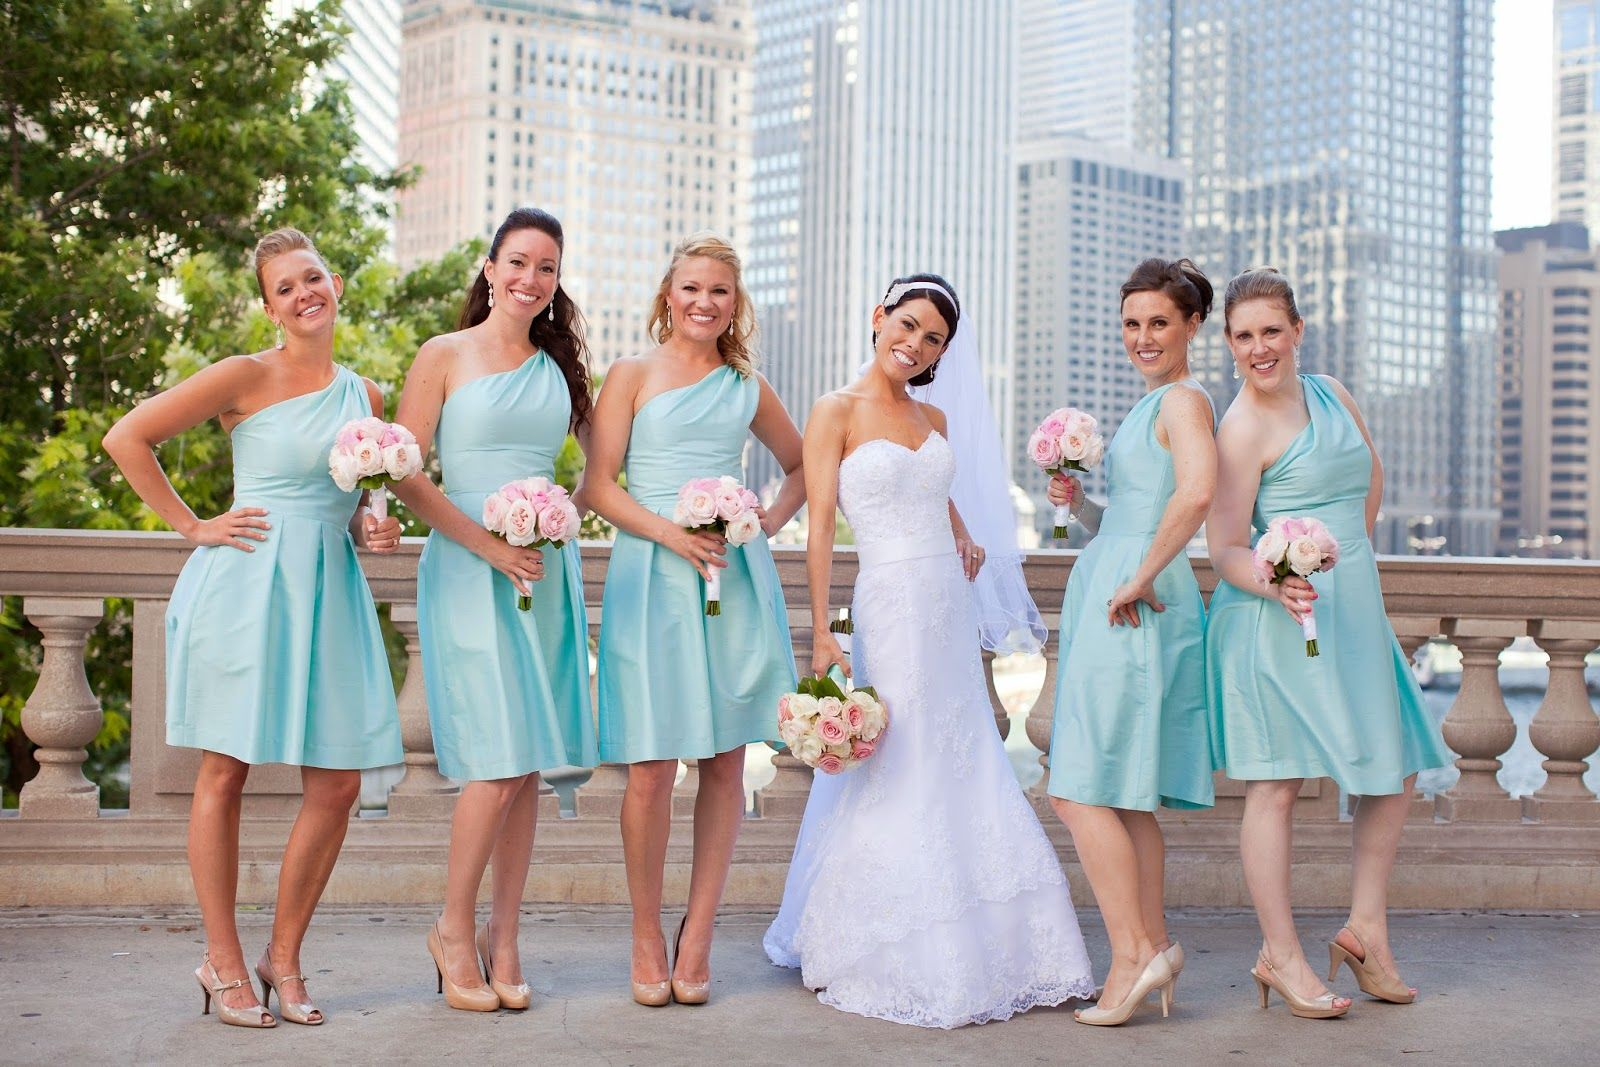 Real Weddings By Color: The Bridesmaids Were Dressed In Alfred Sung Style D458 In